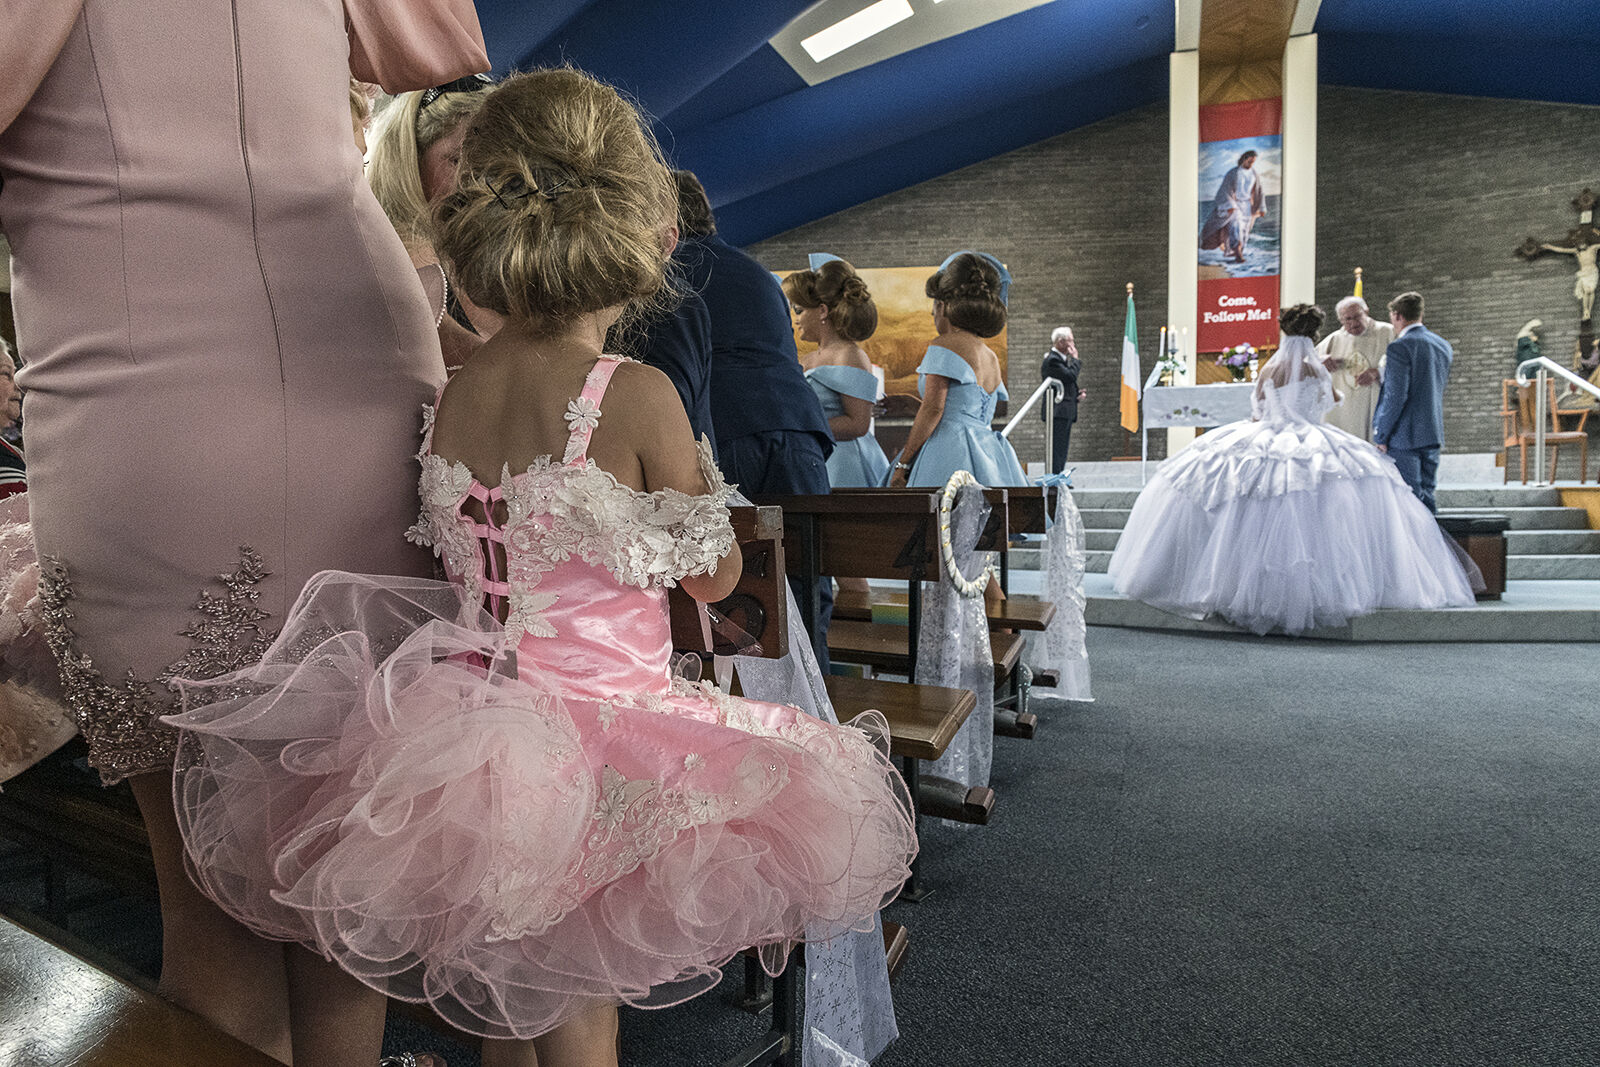 Pink Tutu at Connors Weddings, Wexford, Ireland 2019